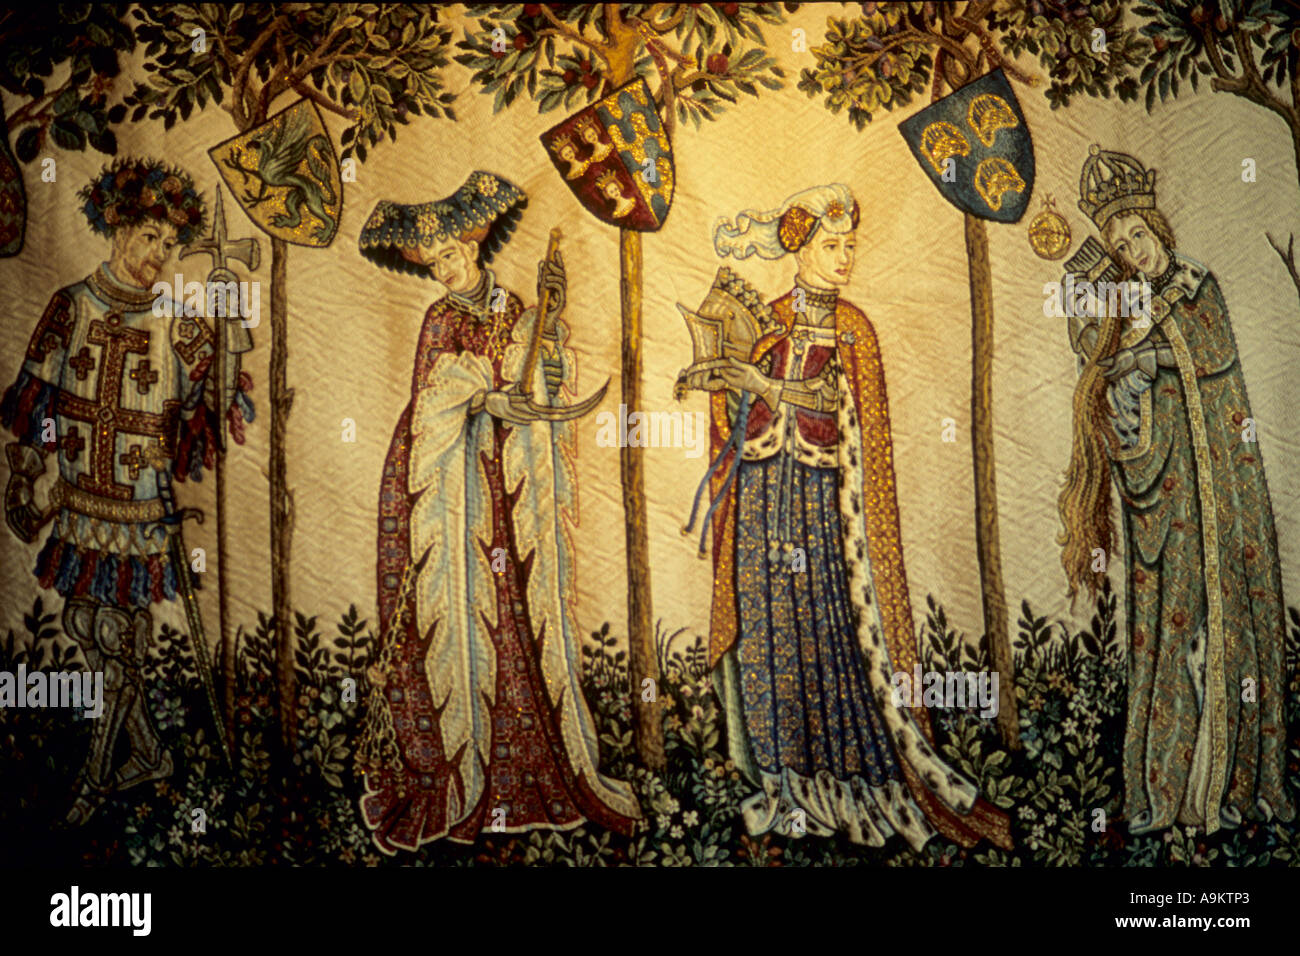 France Loire Valley Langeais castle interior tapestry - Stock Image